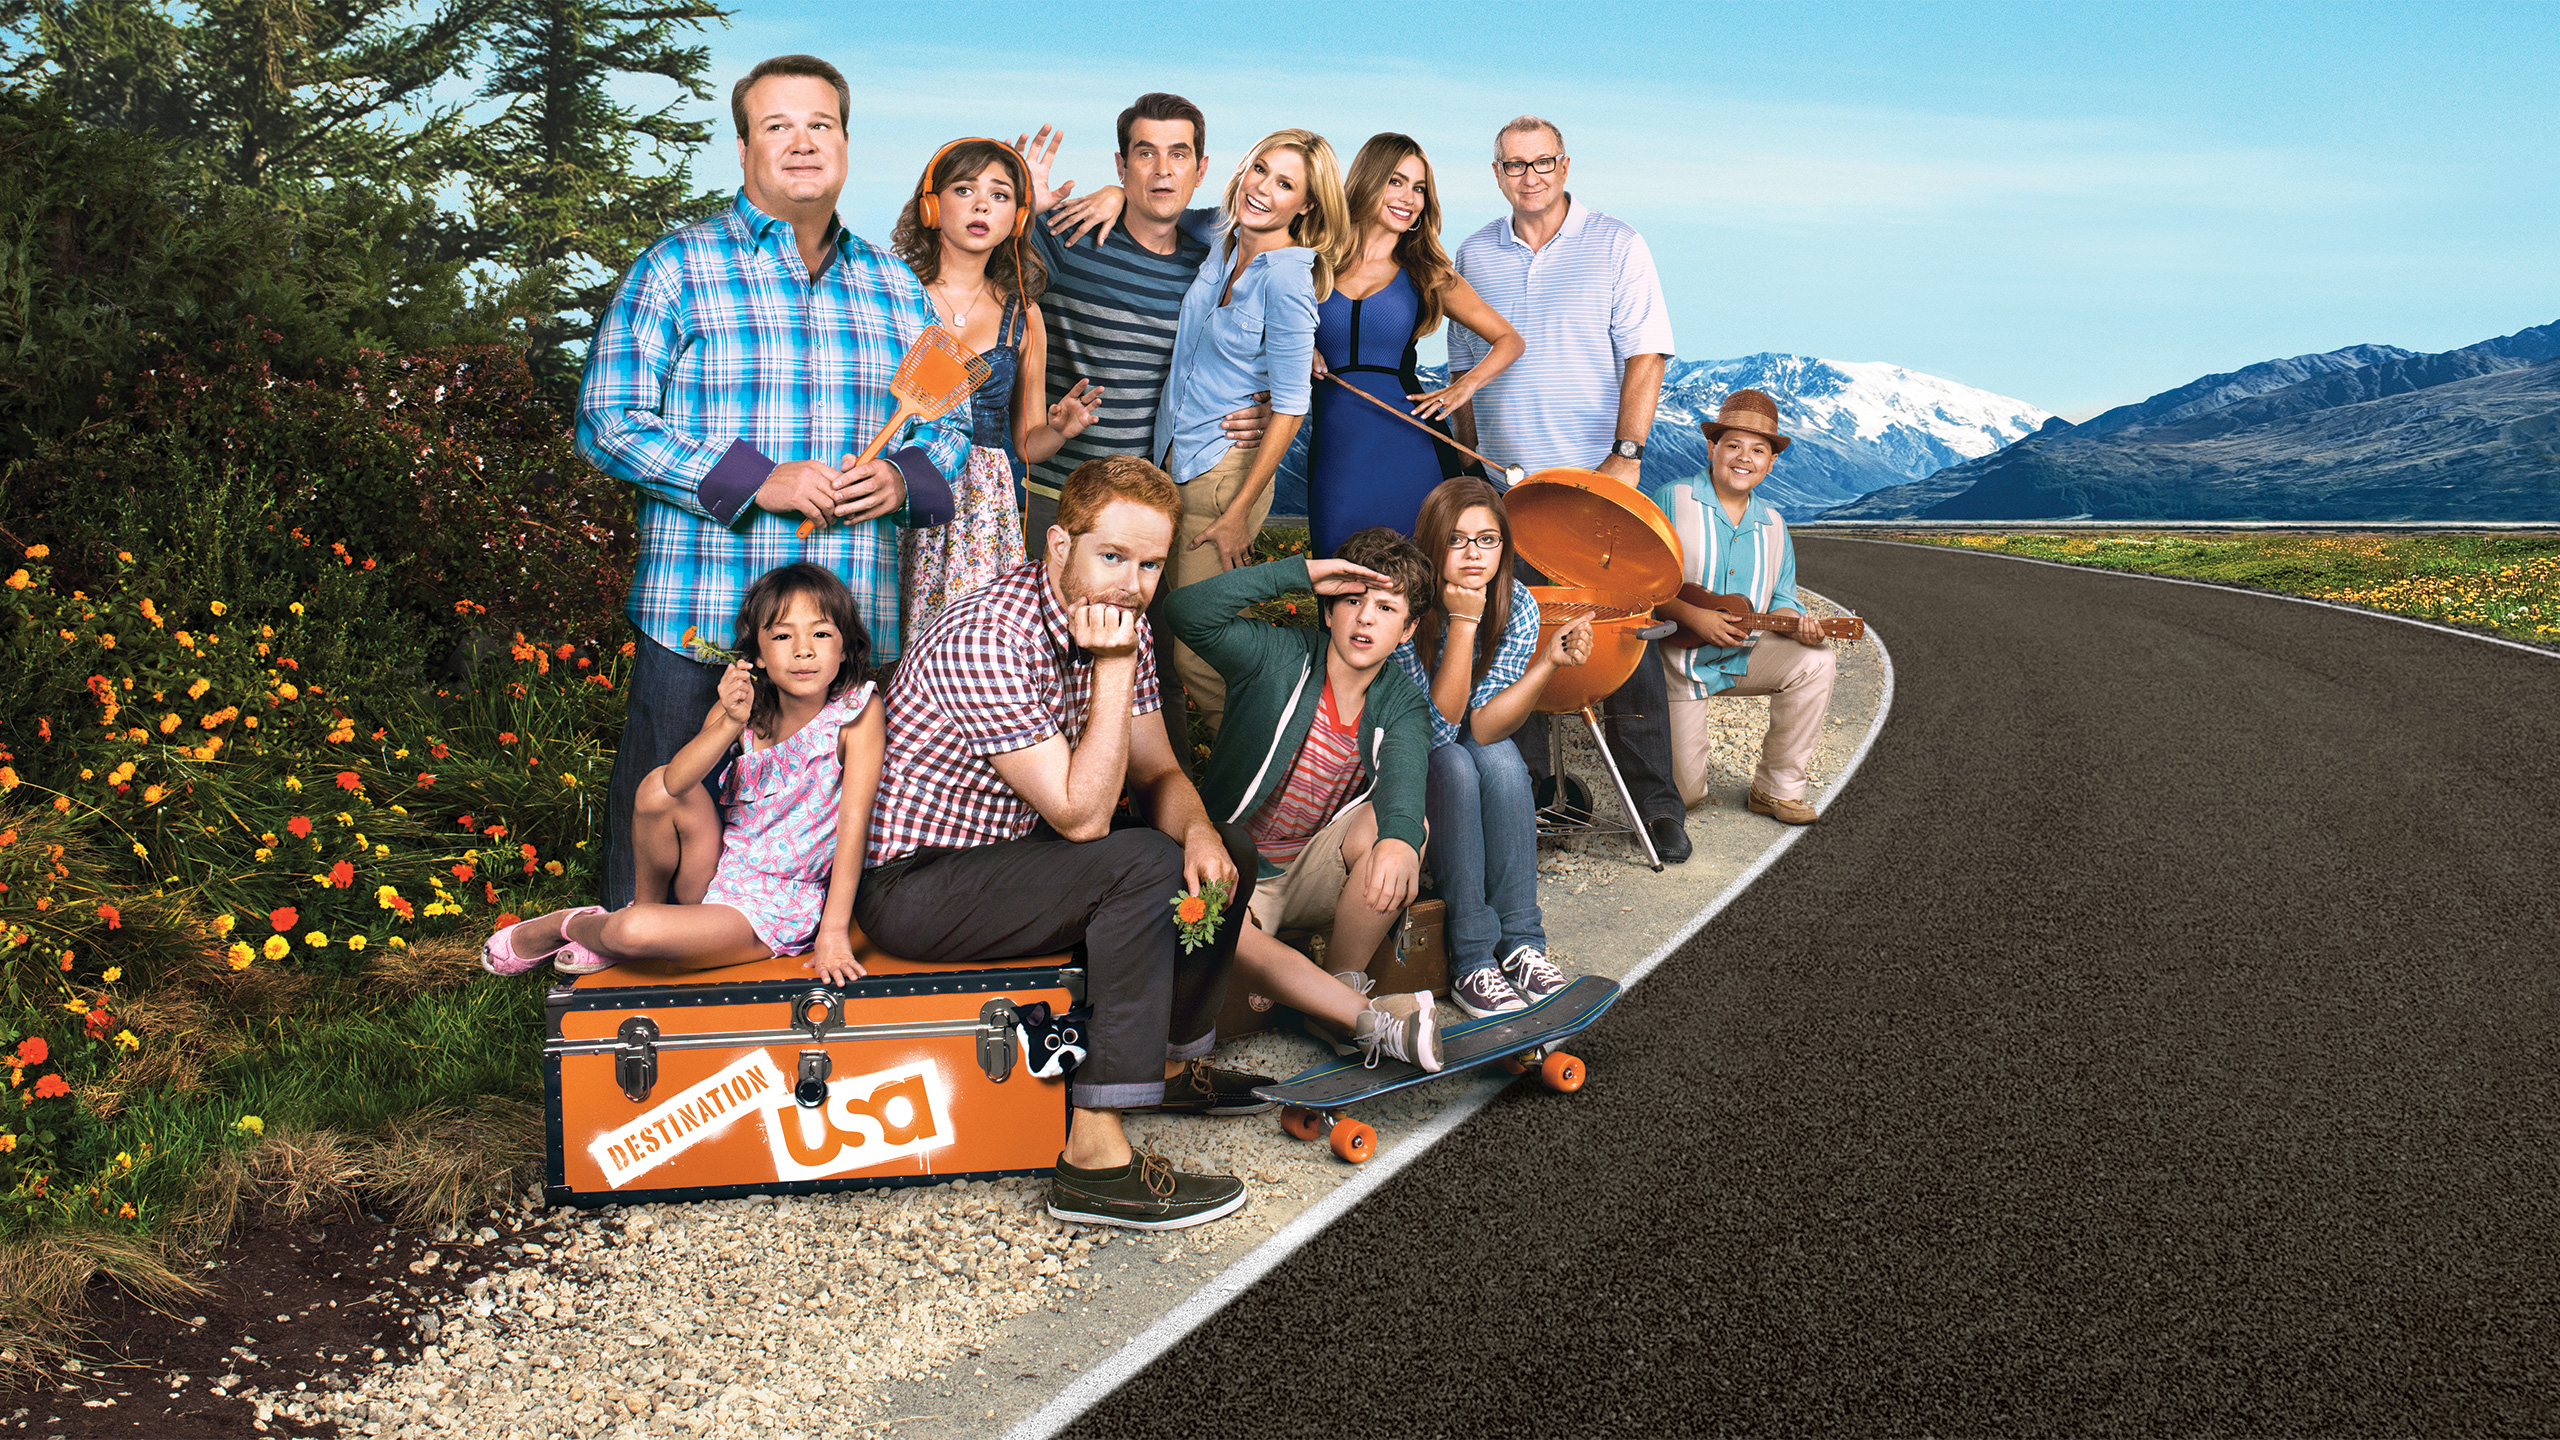 Modern Family - Watch Episodes on USA Network